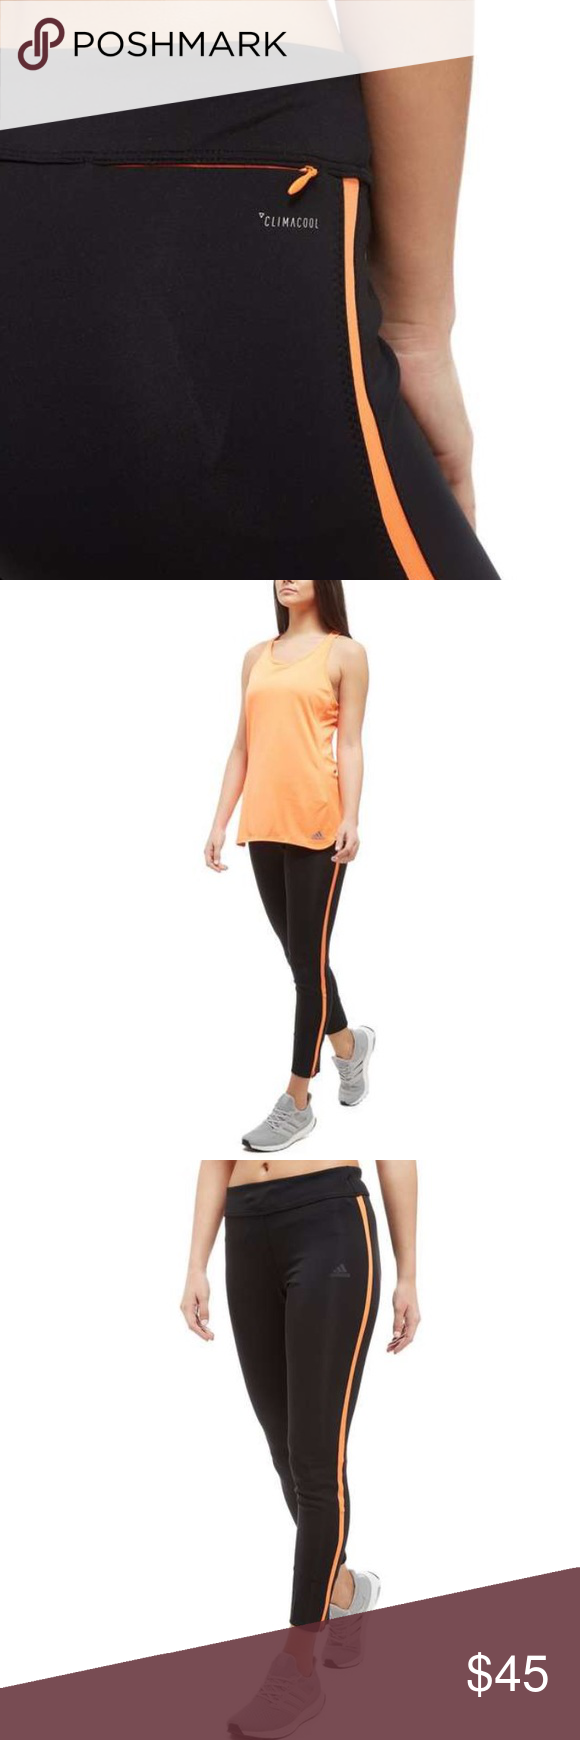 80a3b65c9ea3d7 Adidas Running leggings. NWT. very comfortable cut Look good while going  the extra mile in these women's Response Running Tights from adidas.